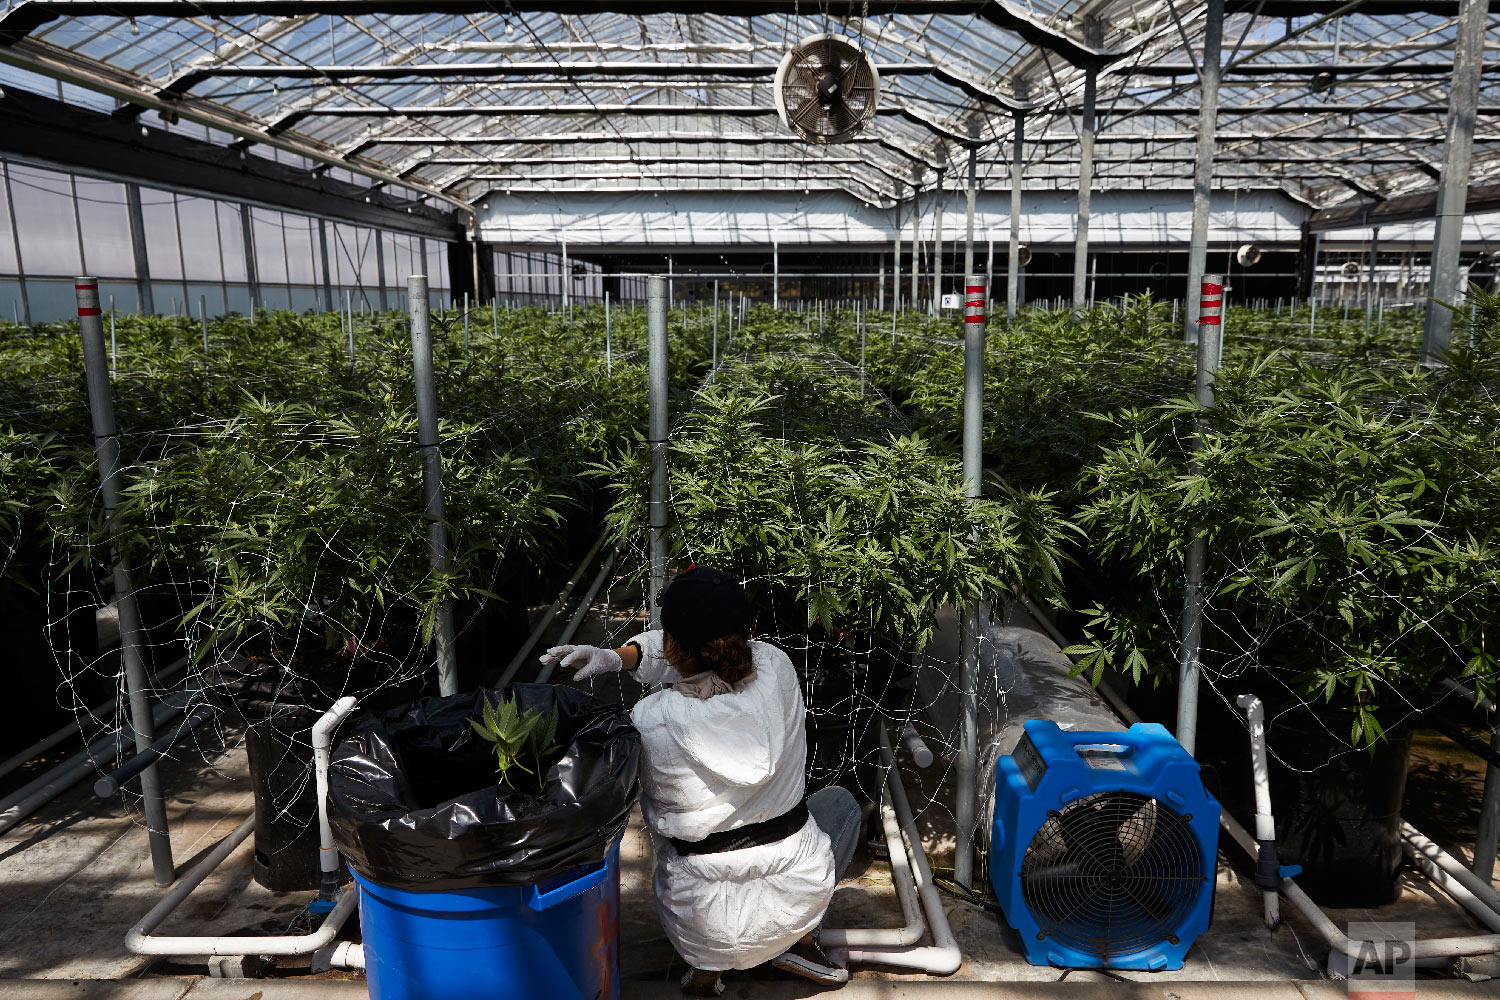 A worker picks unnecessary leaves from cannabis plants at Glass House Farms Thursday, April 12, 2018, in Carpinteria, Calif. Greenhouses that once produced flowers are seen as ideal for growing marijuana. In a climate like Carpinteria's, they heat and cool easily and inexpensively, and the plants thrive. It takes only about three months to grow cannabis in pots of shredded coconut husks, so farmers can get multiple harvests each year. (AP Photo/Jae C. Hong)